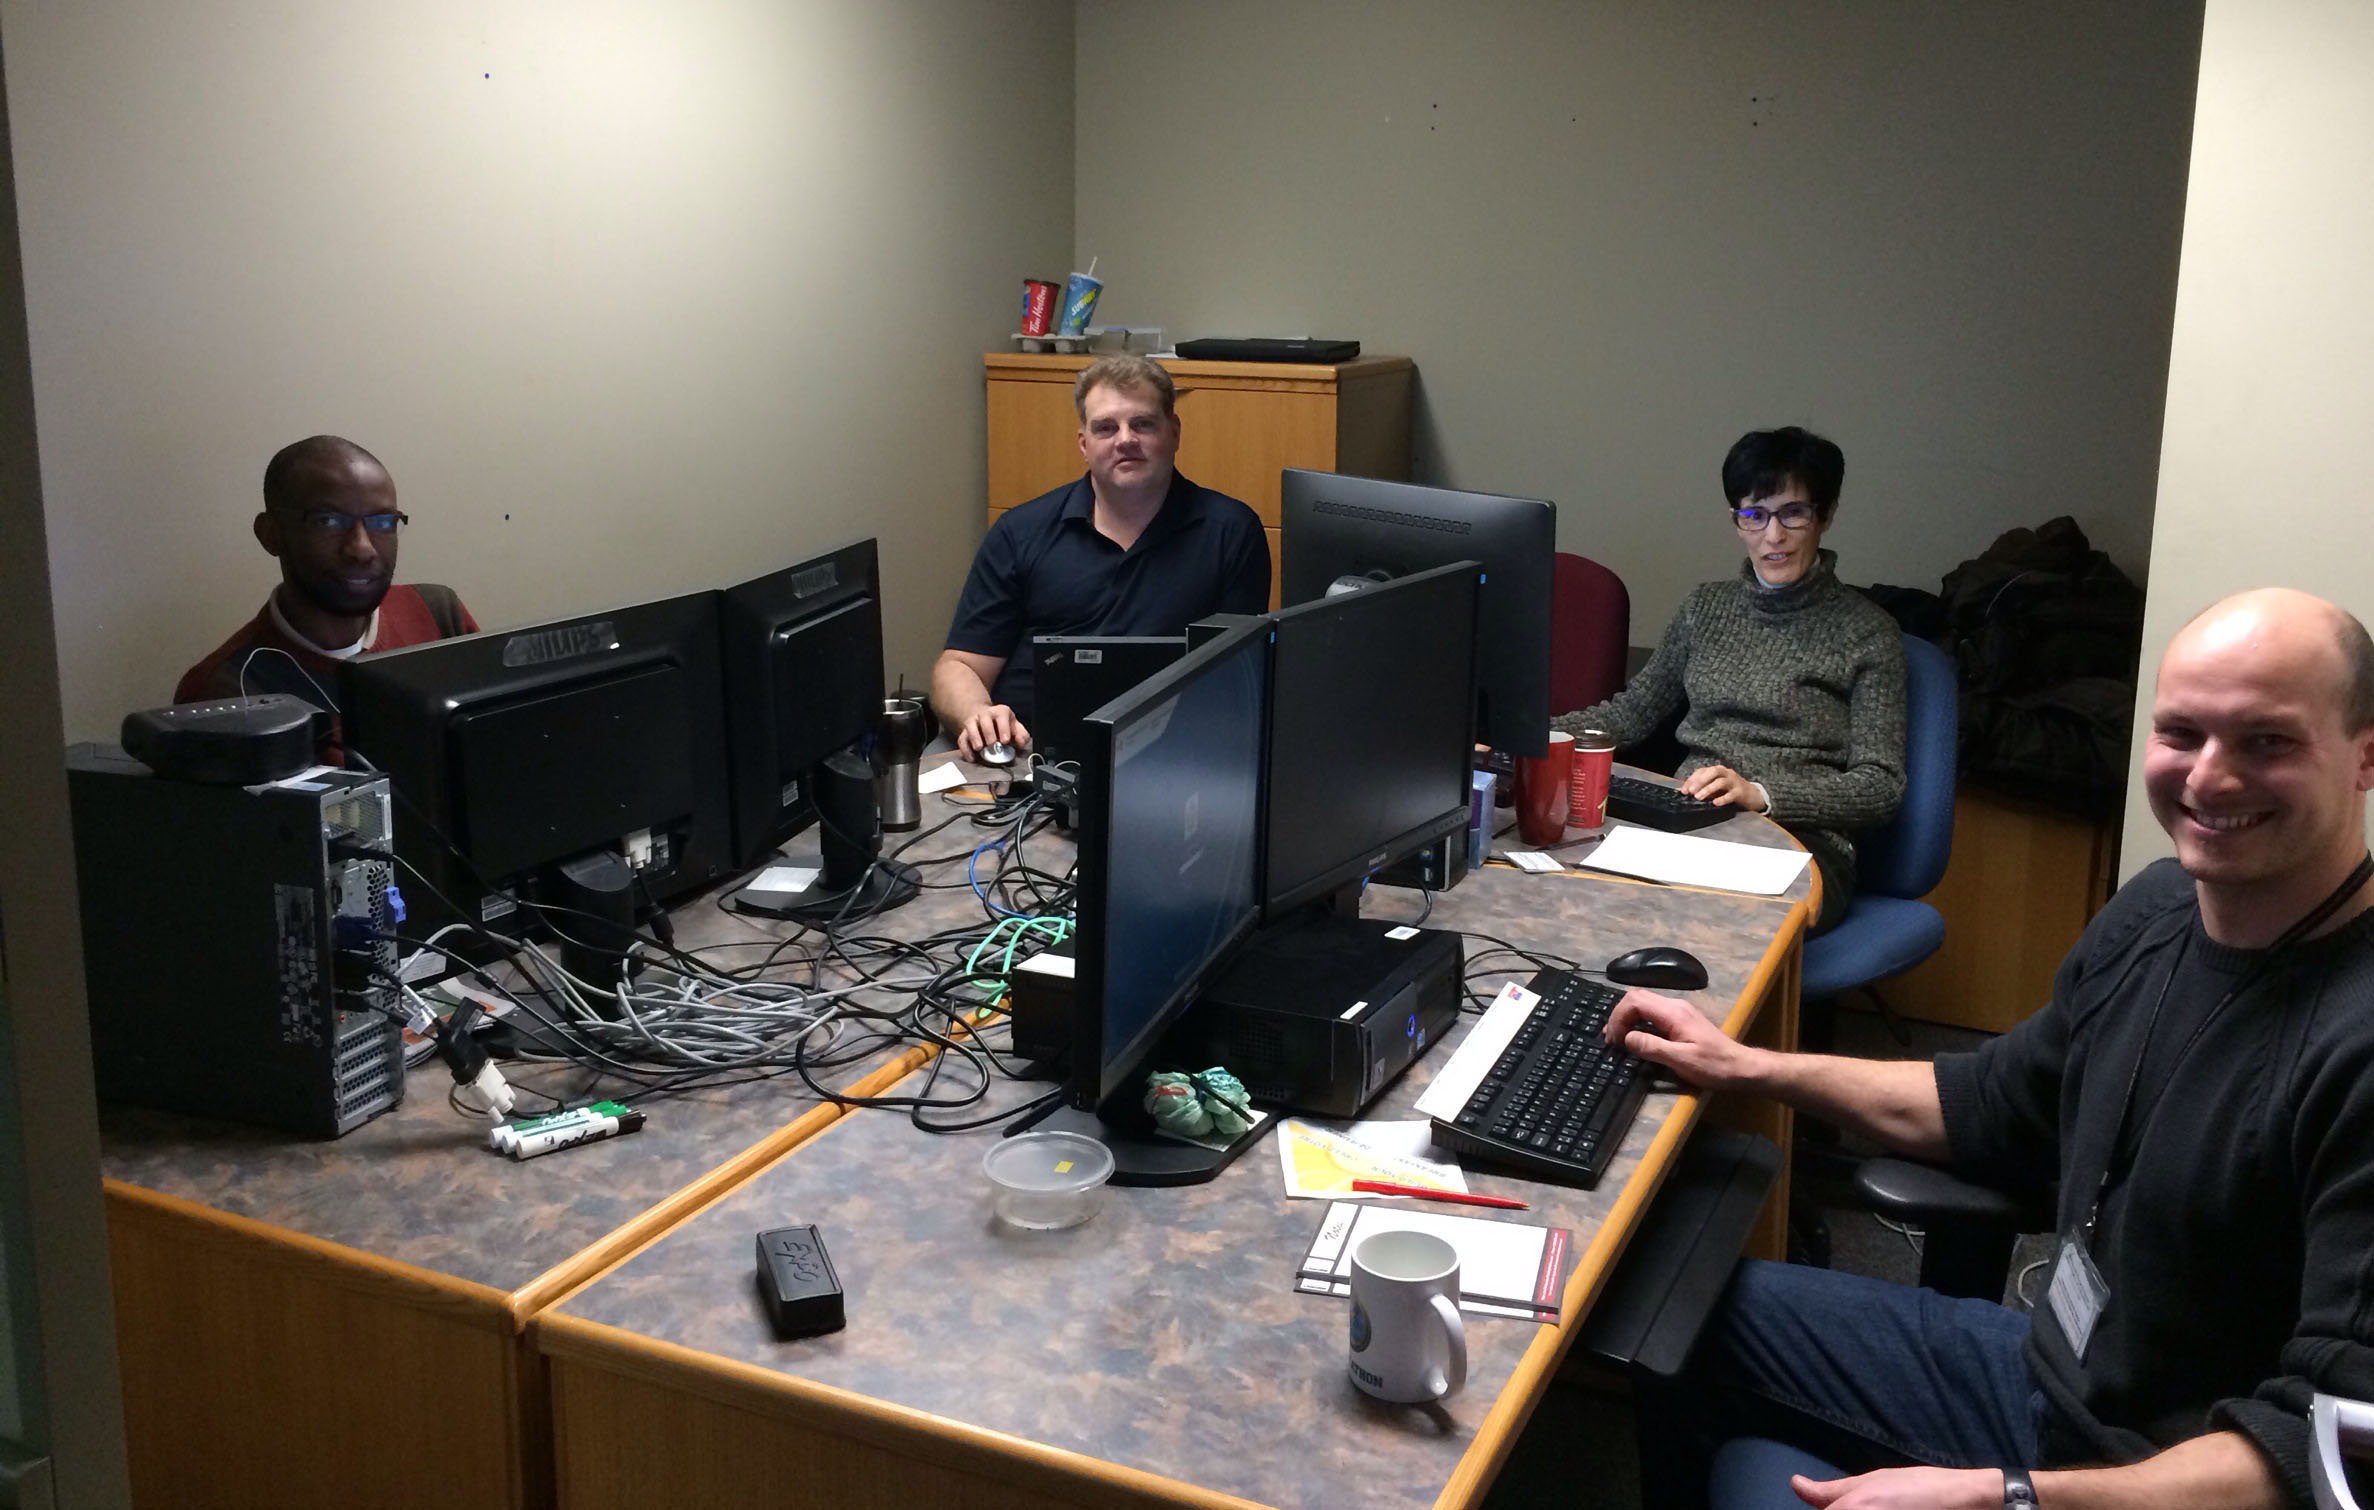 A photo of four people who participated in the code sprint to develop and tweak the new Parole Officer Dashboard. They are sitting around a table covered in computers.